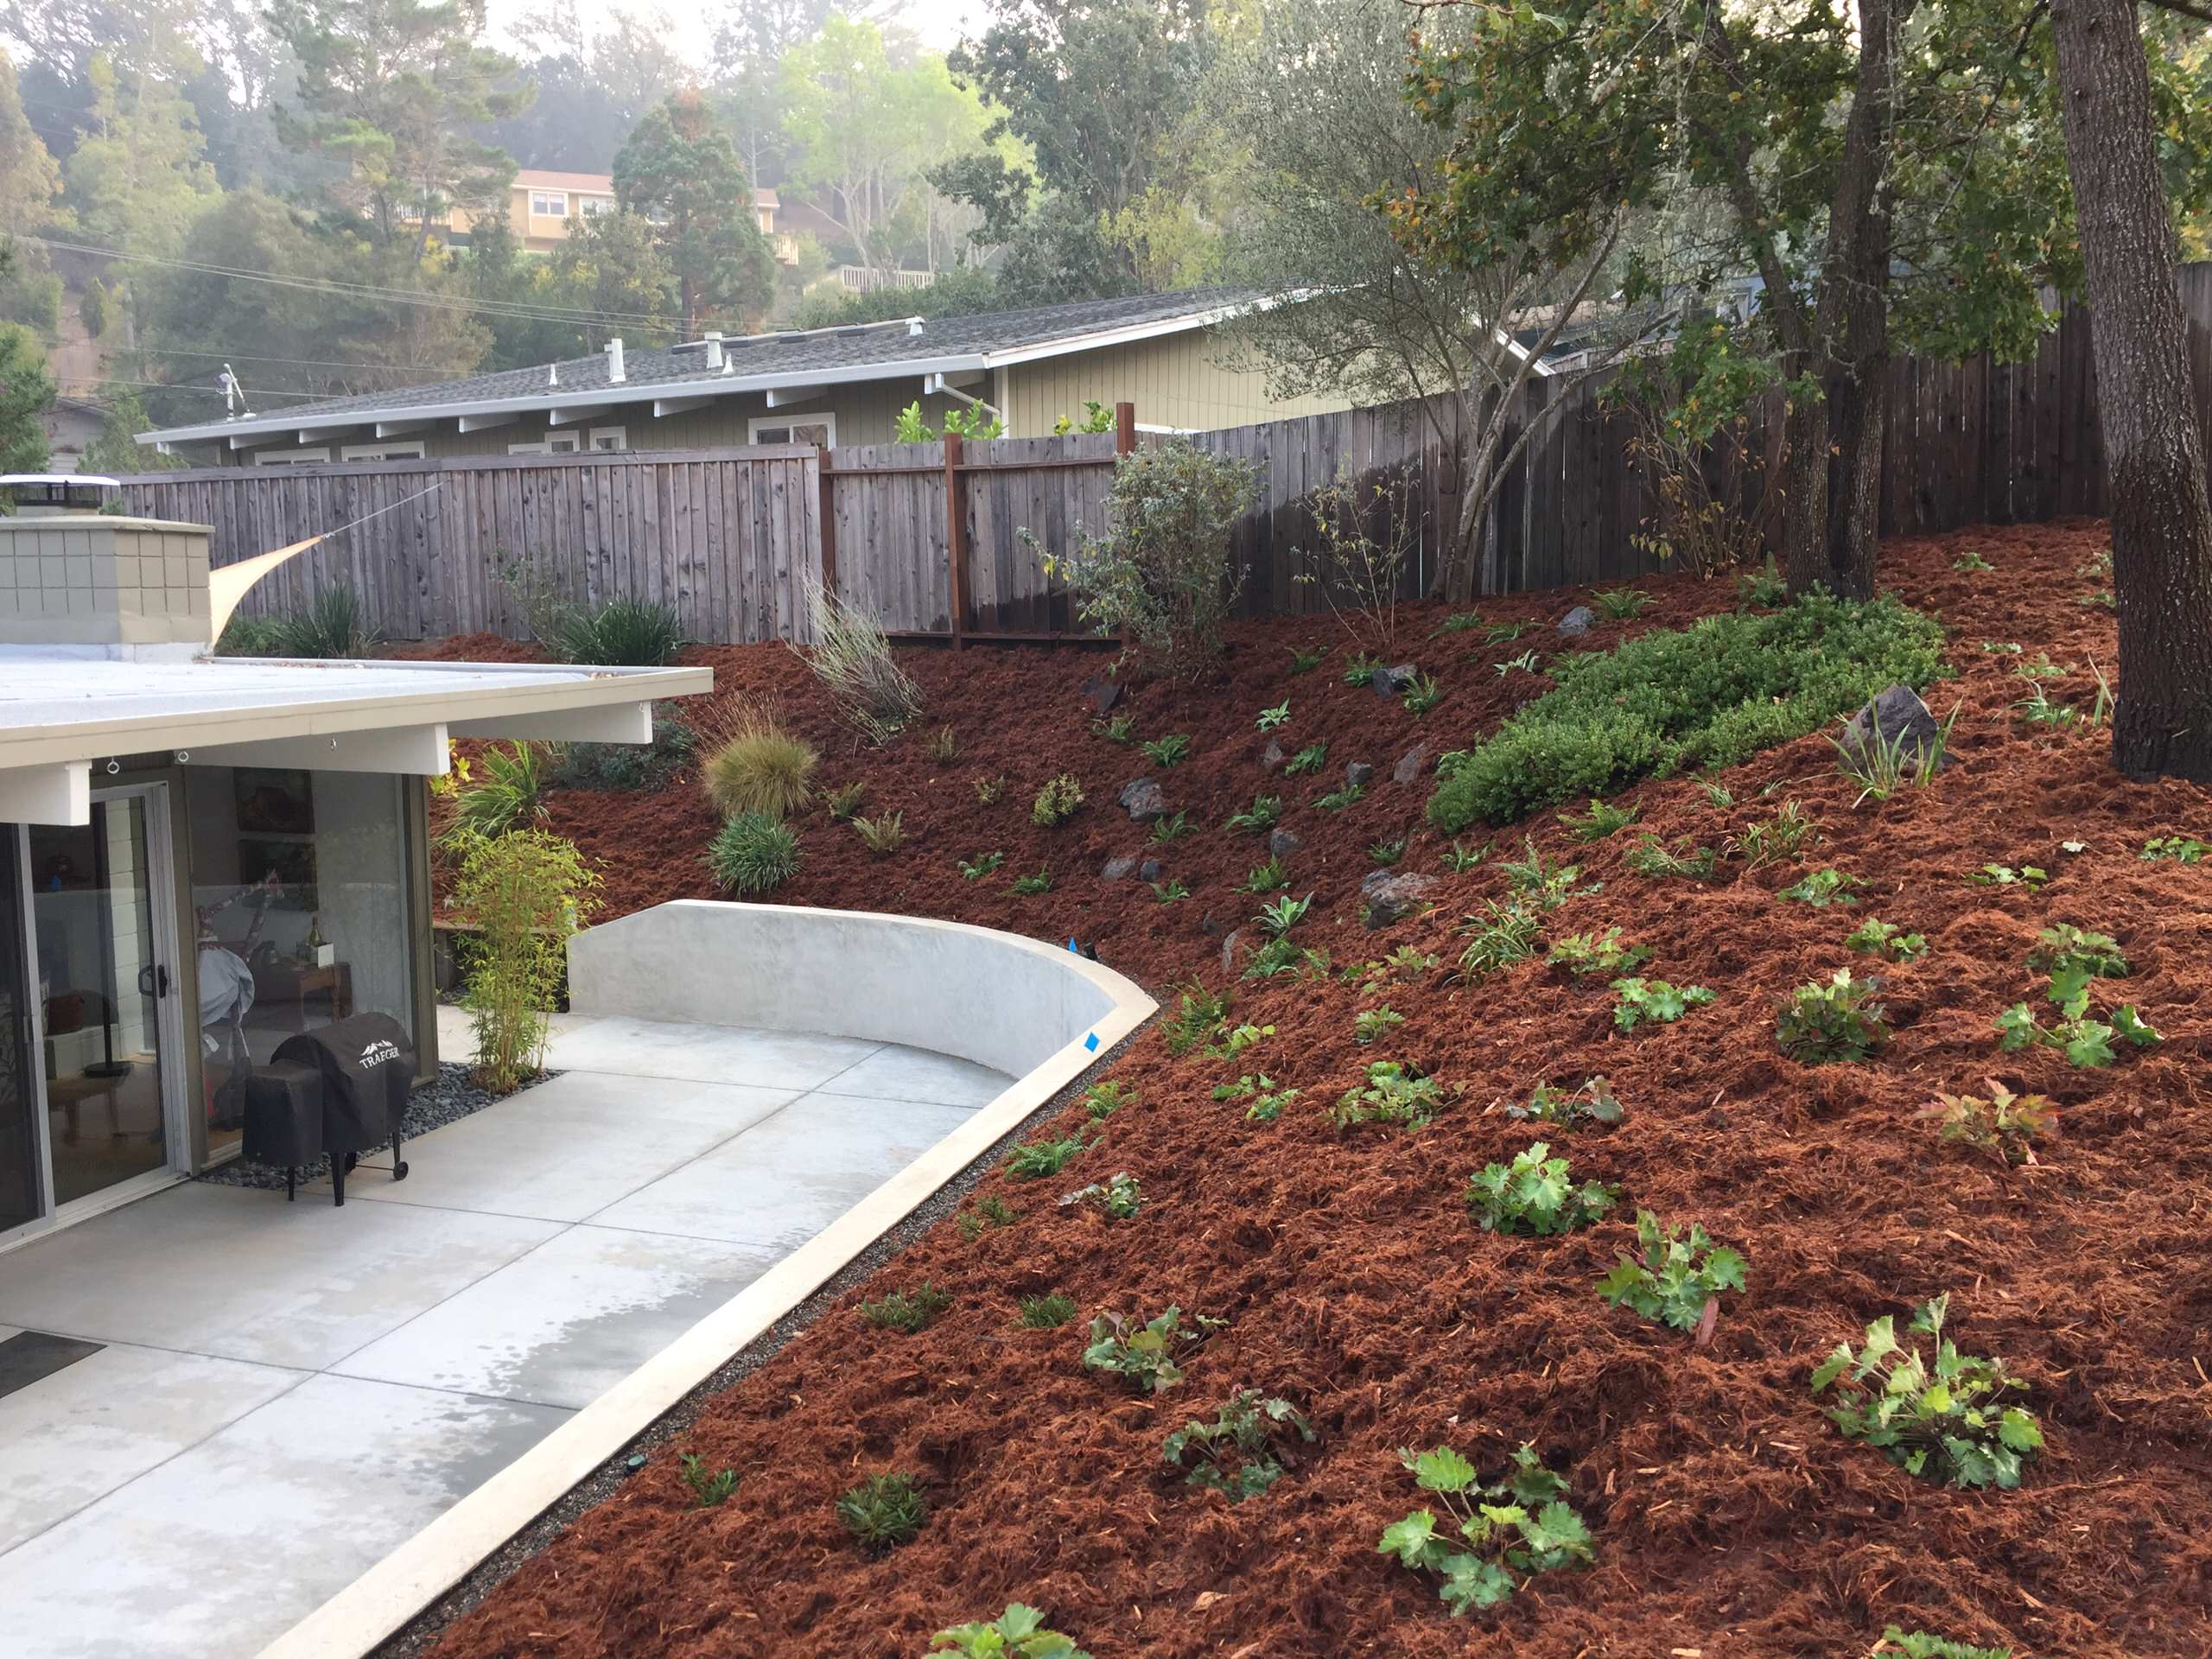 Ah, what a lucky day to get the call to help a wonderful couple with the landscape adorning their lovely Eichler home nestled next to open space in the warm hills of San Rafael. There was a failing wo